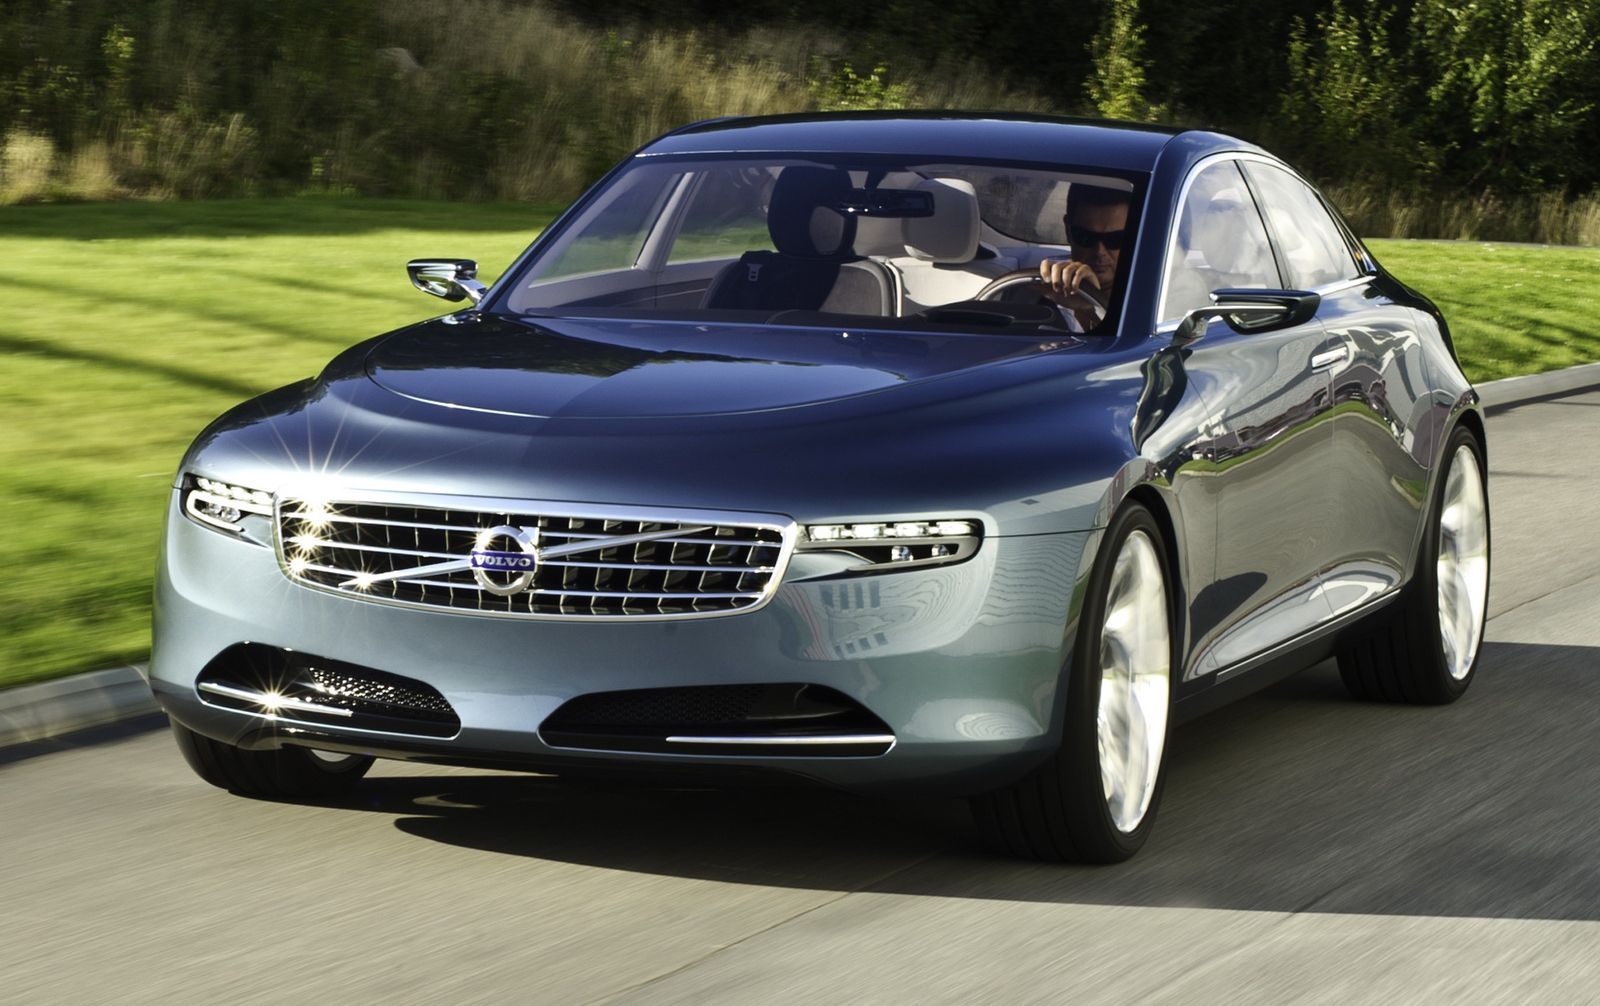 Volvo Concept Cars Volvo Concept You Offers New Look At Upcoming